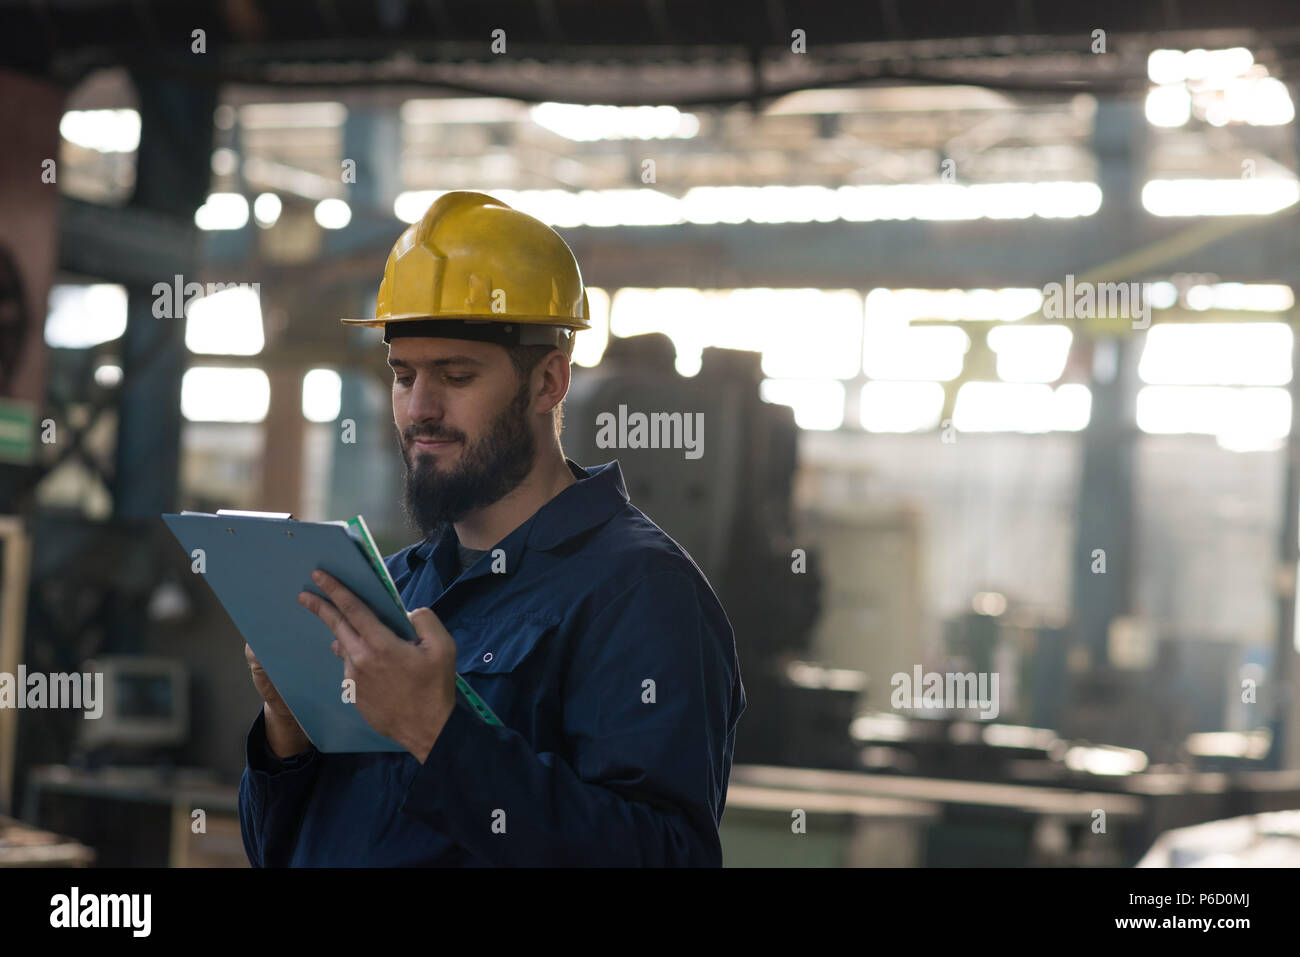 Technician maintaining record on clipboard - Stock Image